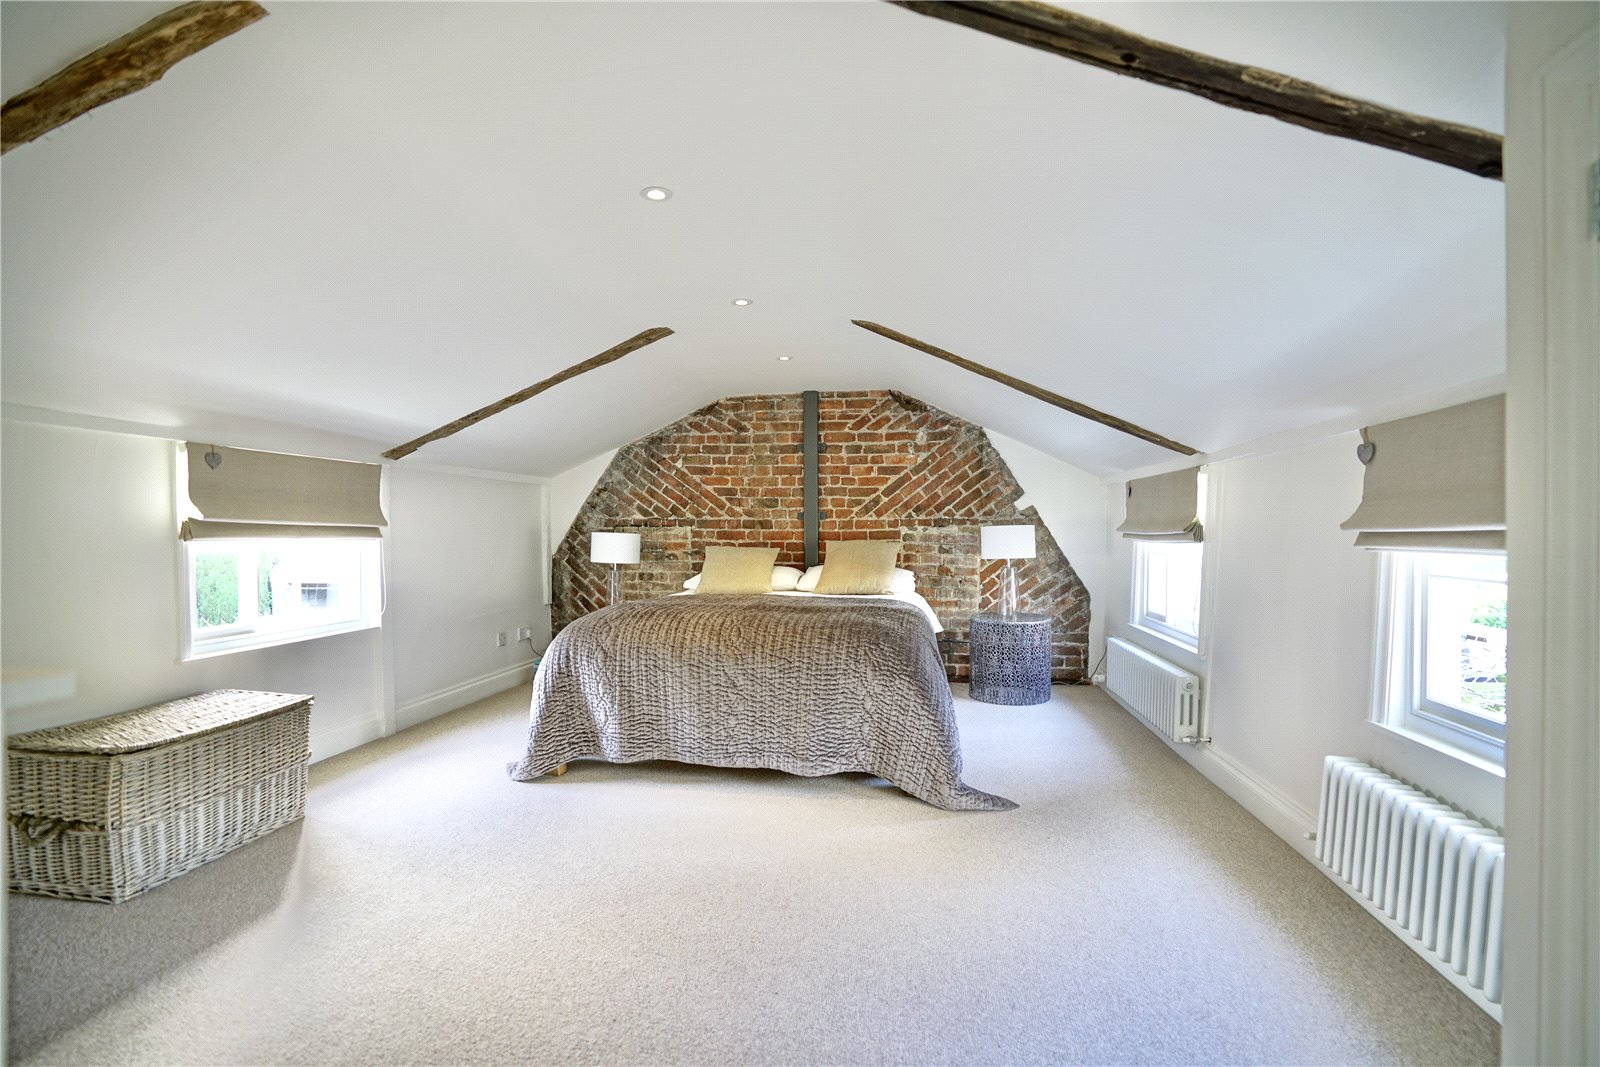 4 bed house for sale in Buckden, PE19 5TE, PE19